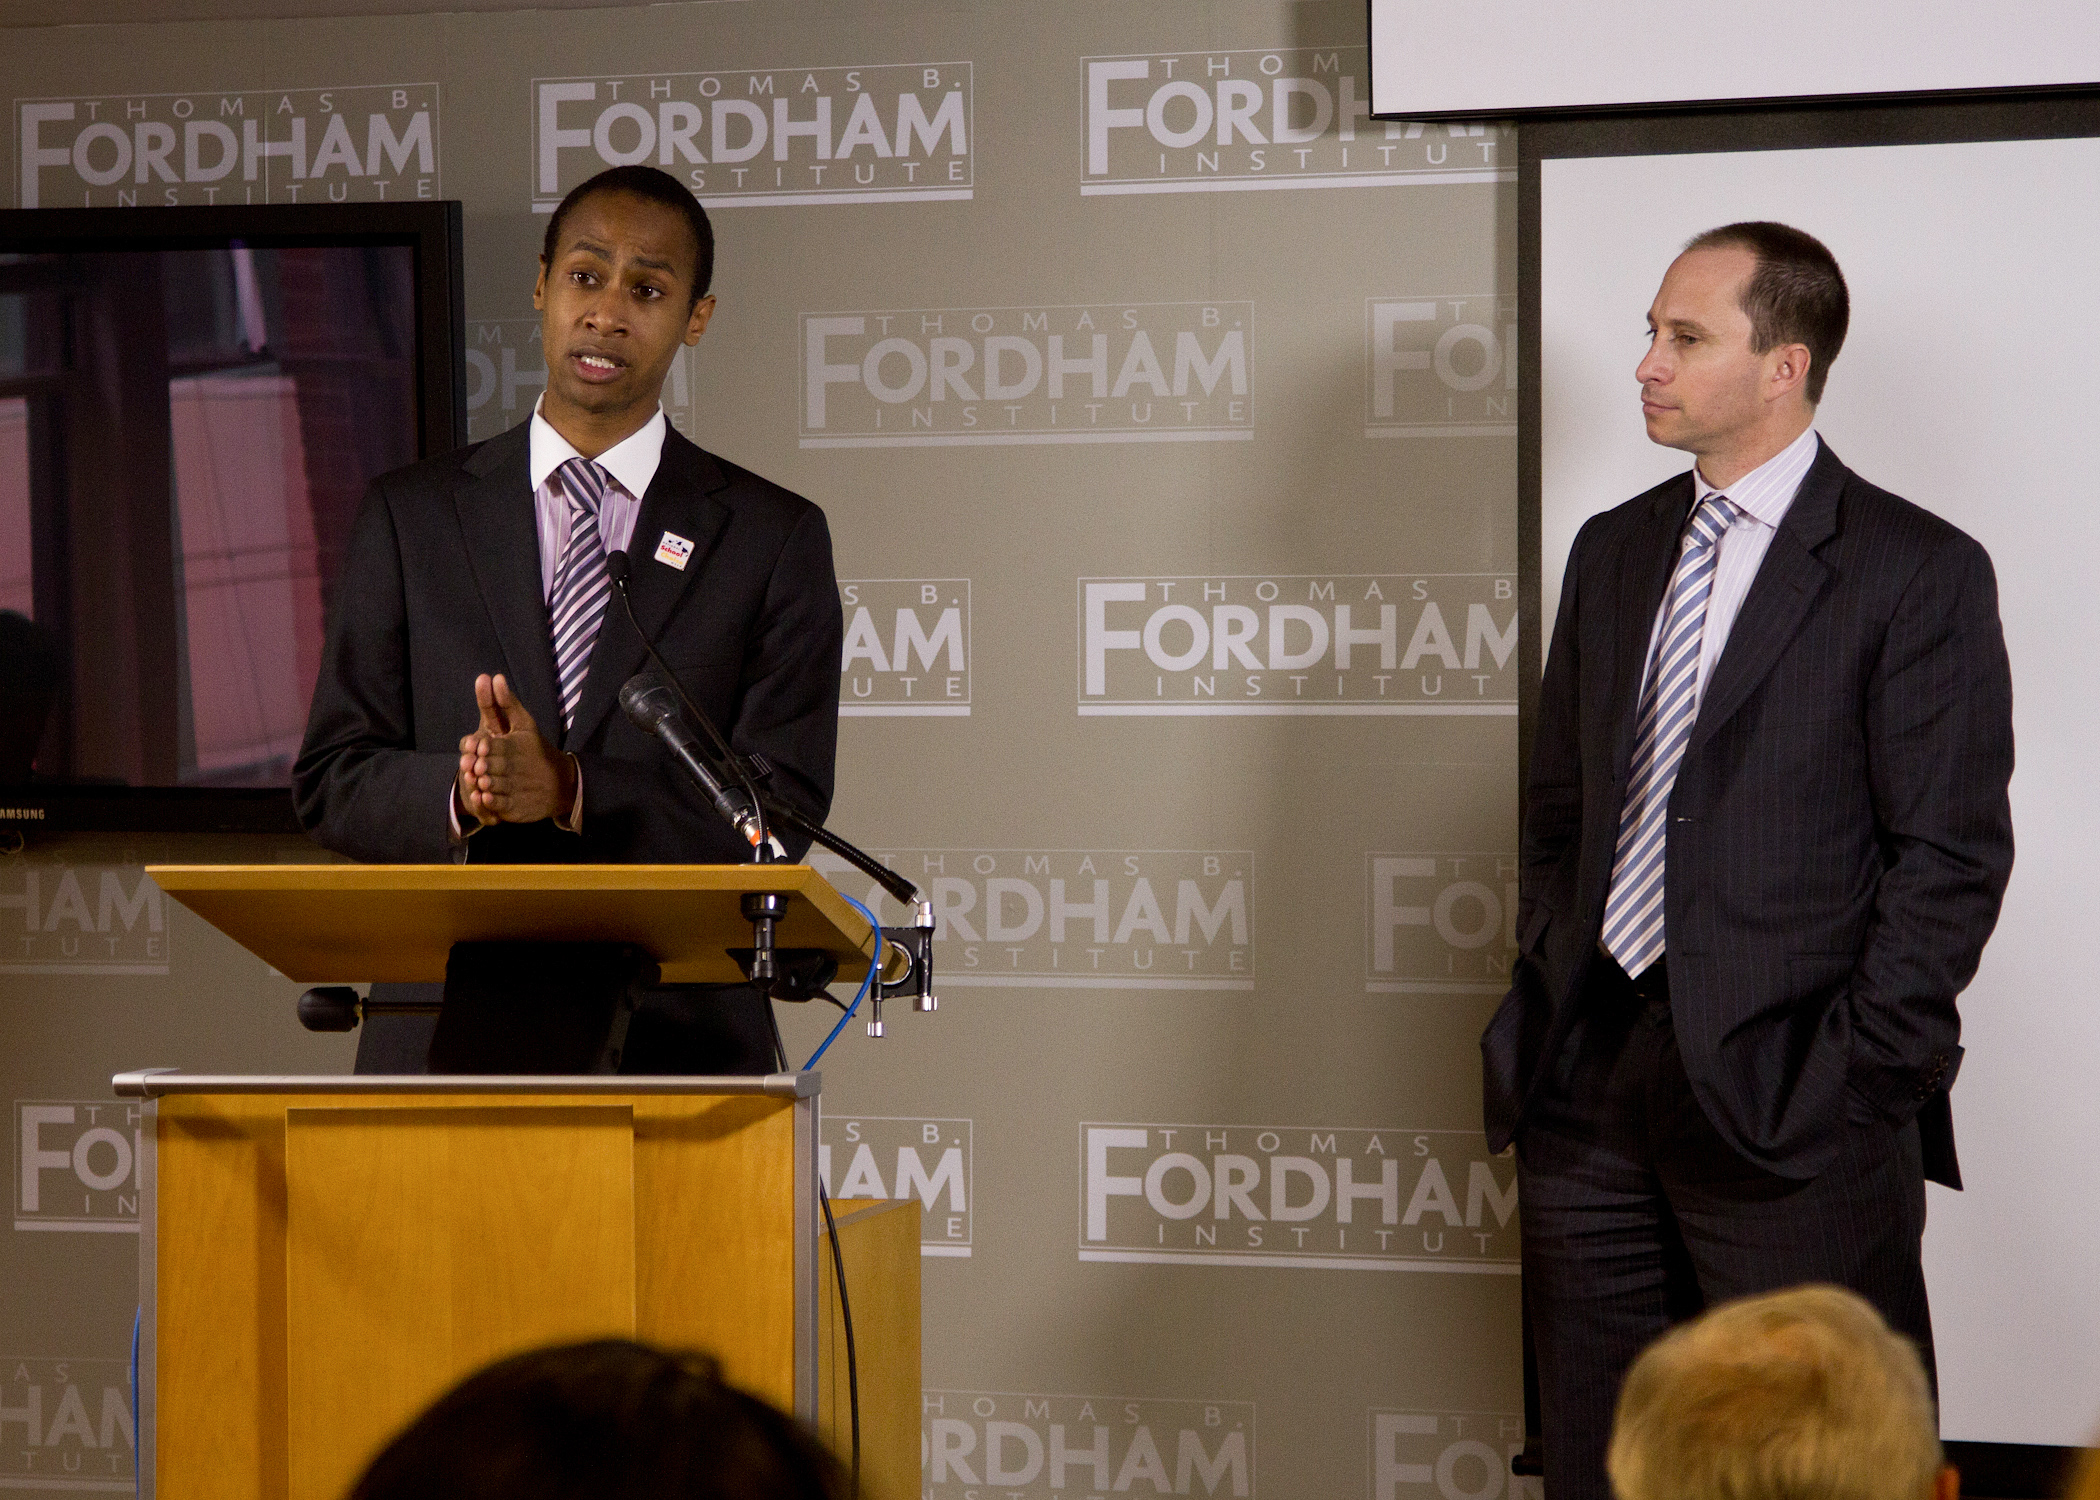 After being introduced at Fordham